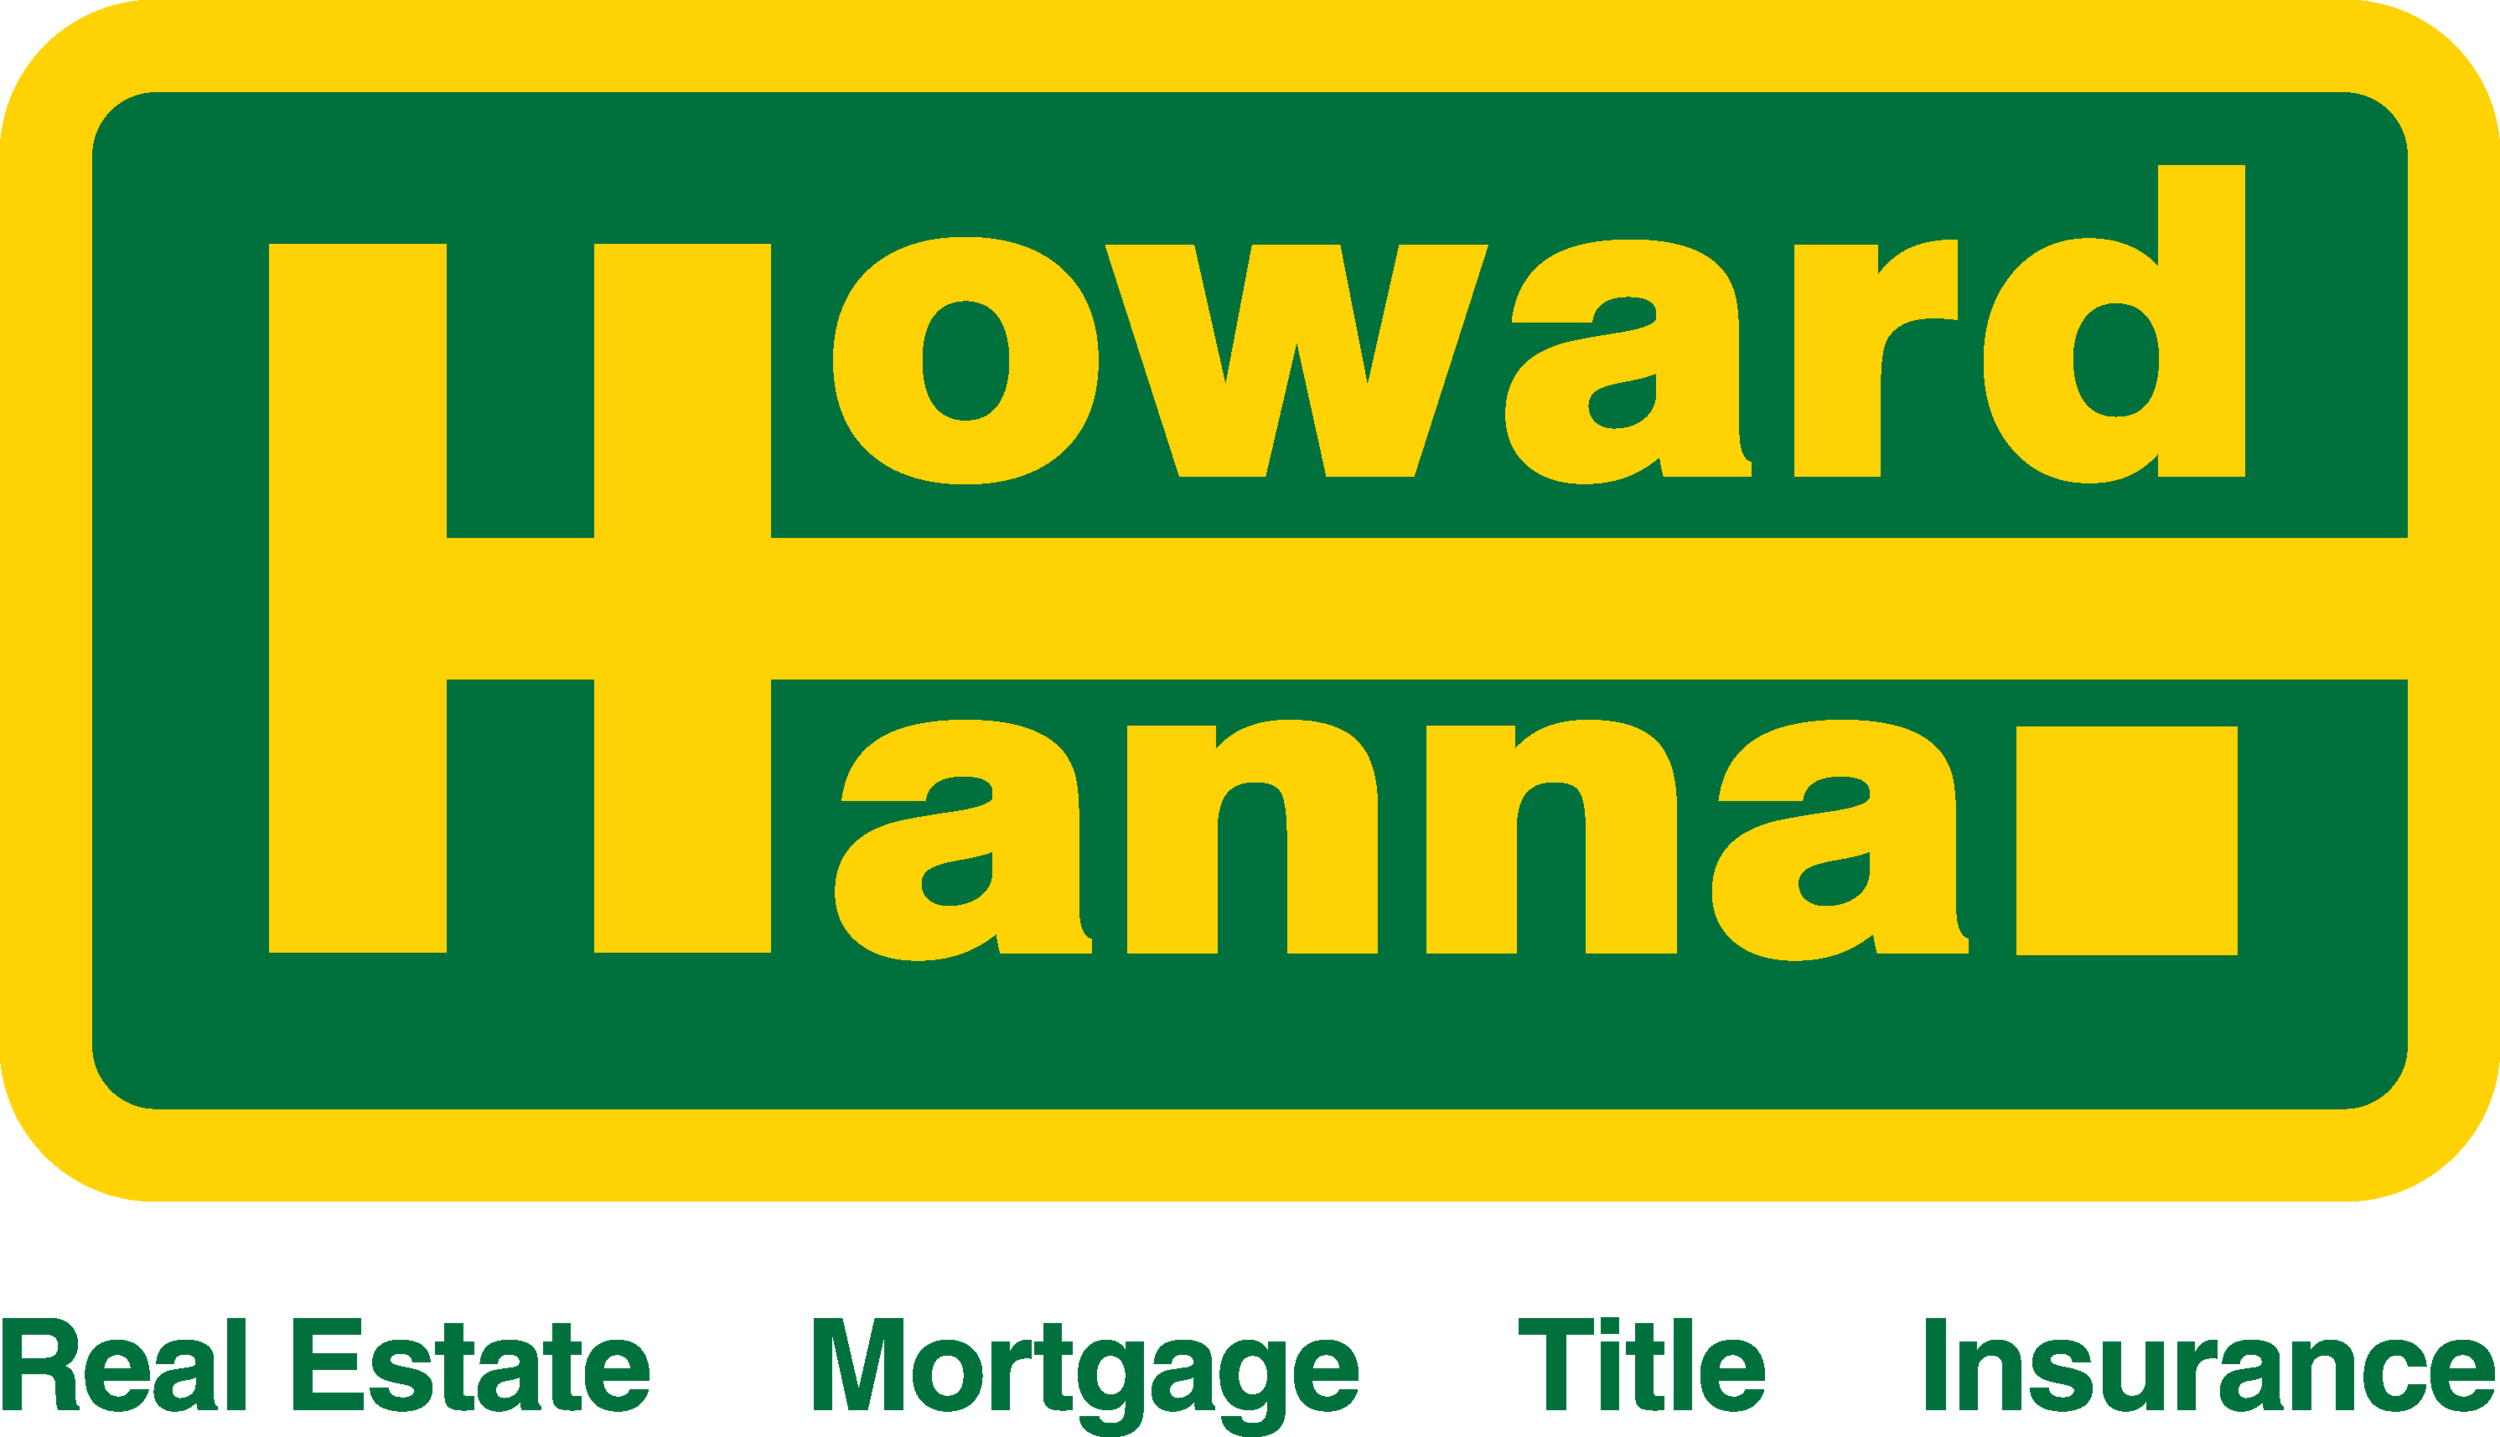 Howard Hanna Logo.png